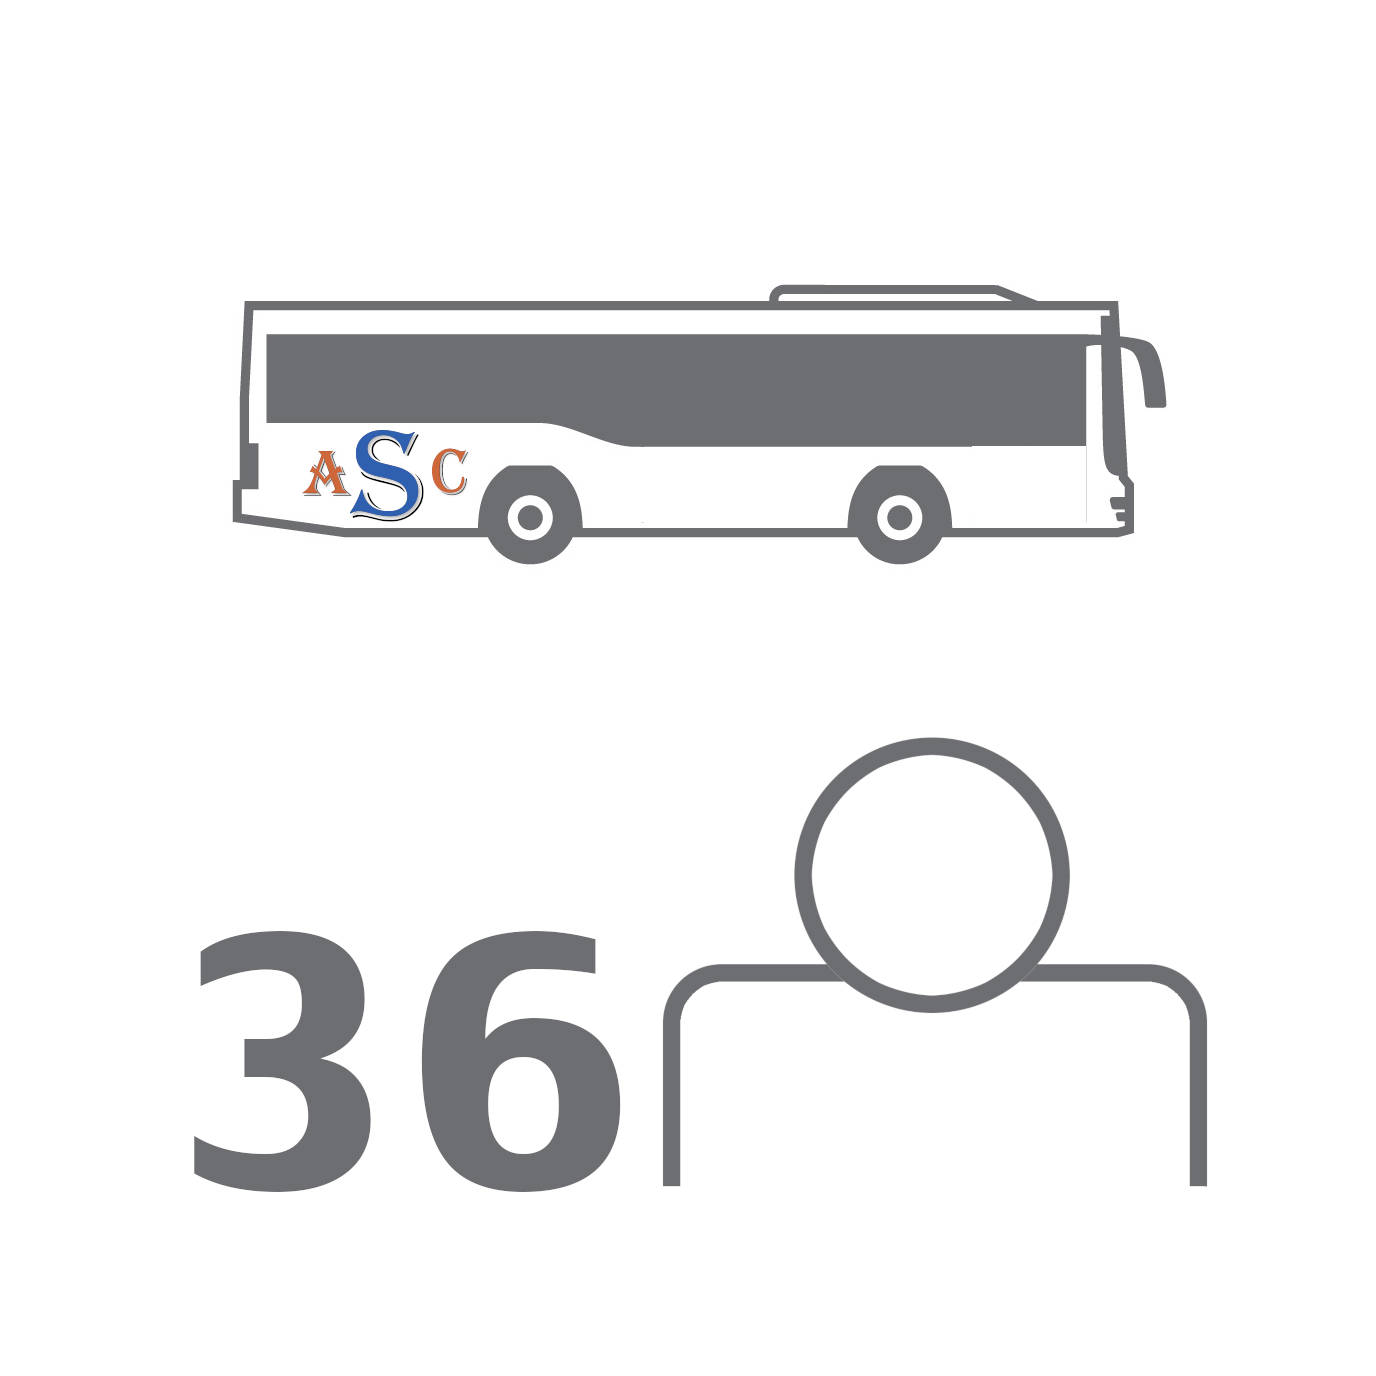 Small: 36 Seat Coach Travel: Perfect for a medium sized travel group, our small coaches accommodate up to 36 passengers in comfort and style.